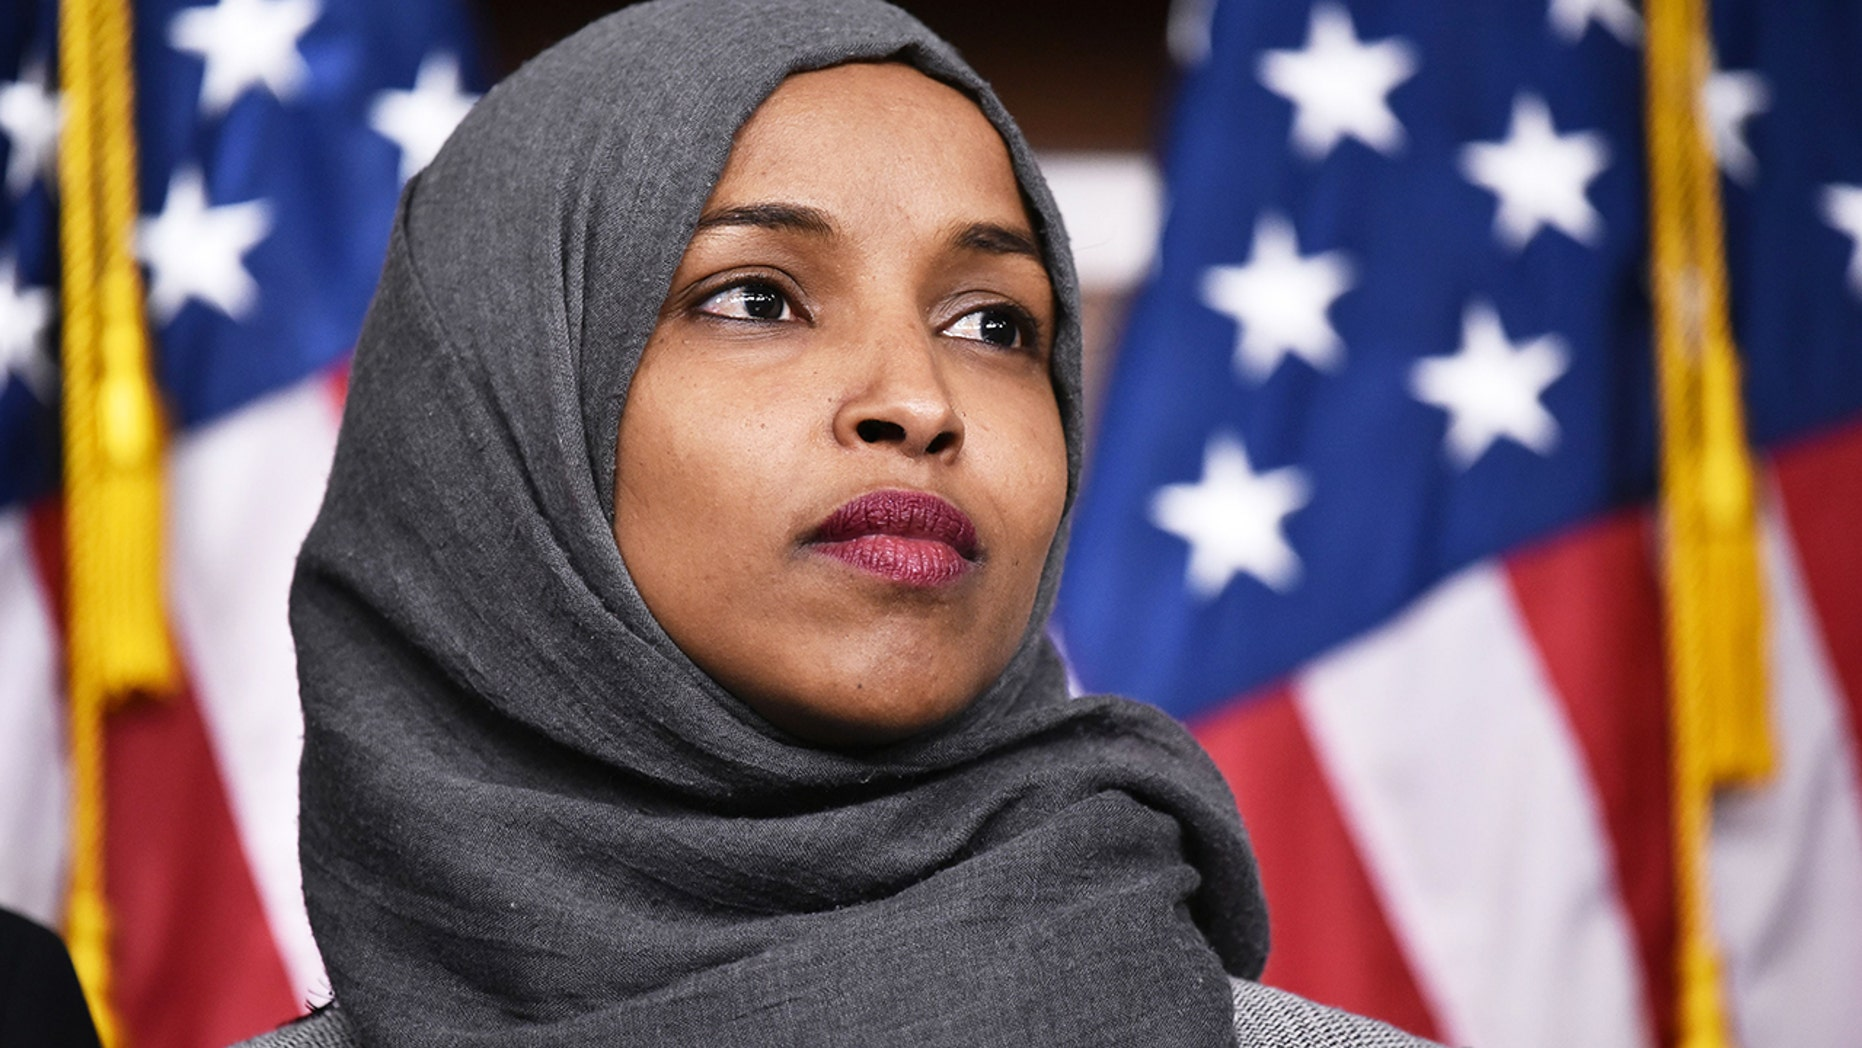 Twitter CEO personally calls Omar to explain policy after Trump tweet: report